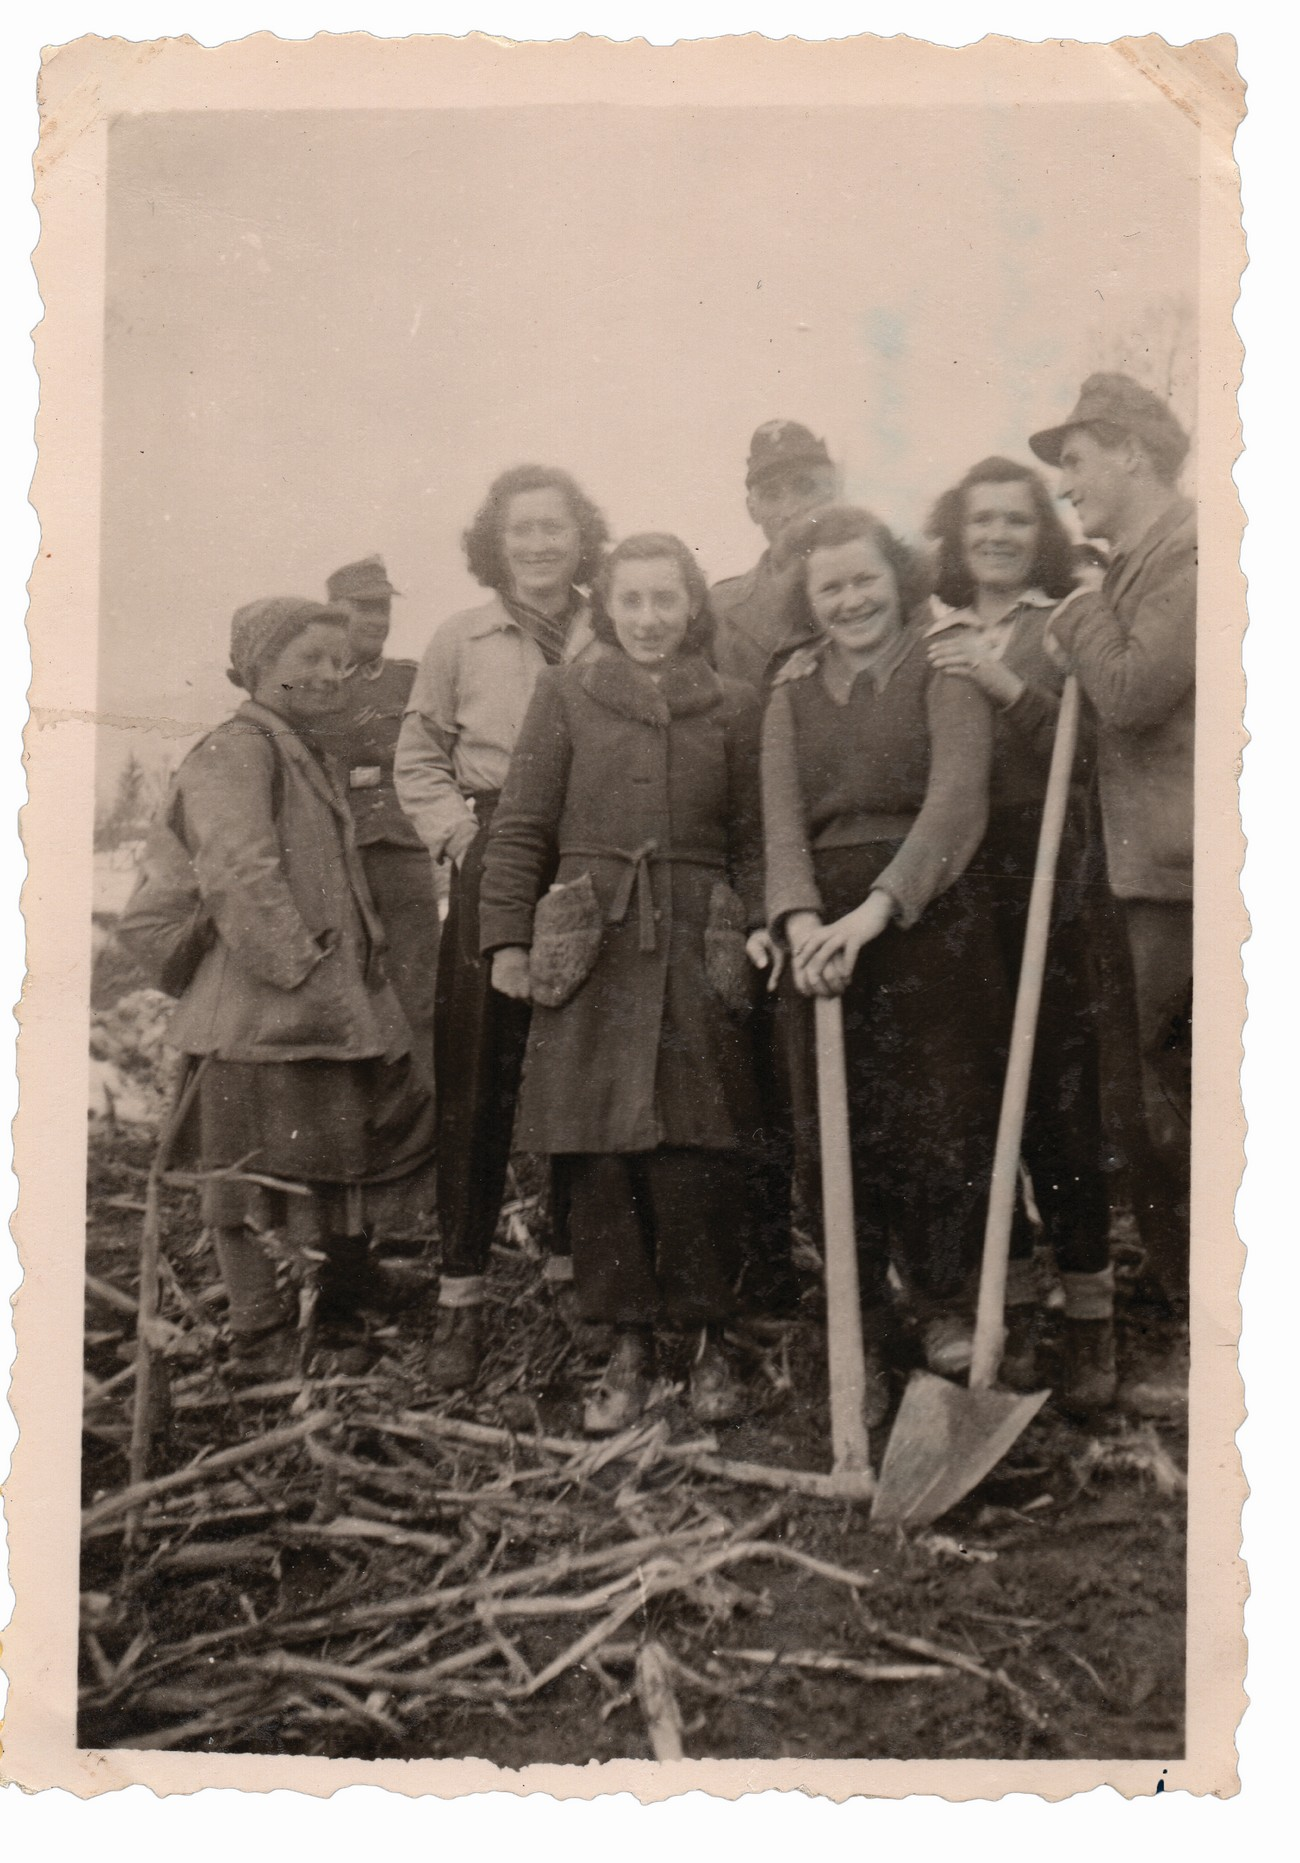 The picture depicts Vida Urgl (fourth from left, born 1927) in the middle of a group of Ljubljana residents mobilized by the Germans during the occupation in 1945 to dig fire trenches around Ljubljana as part of the Labour Service (Arbeitsdienst). Archive of Vida Urgl.